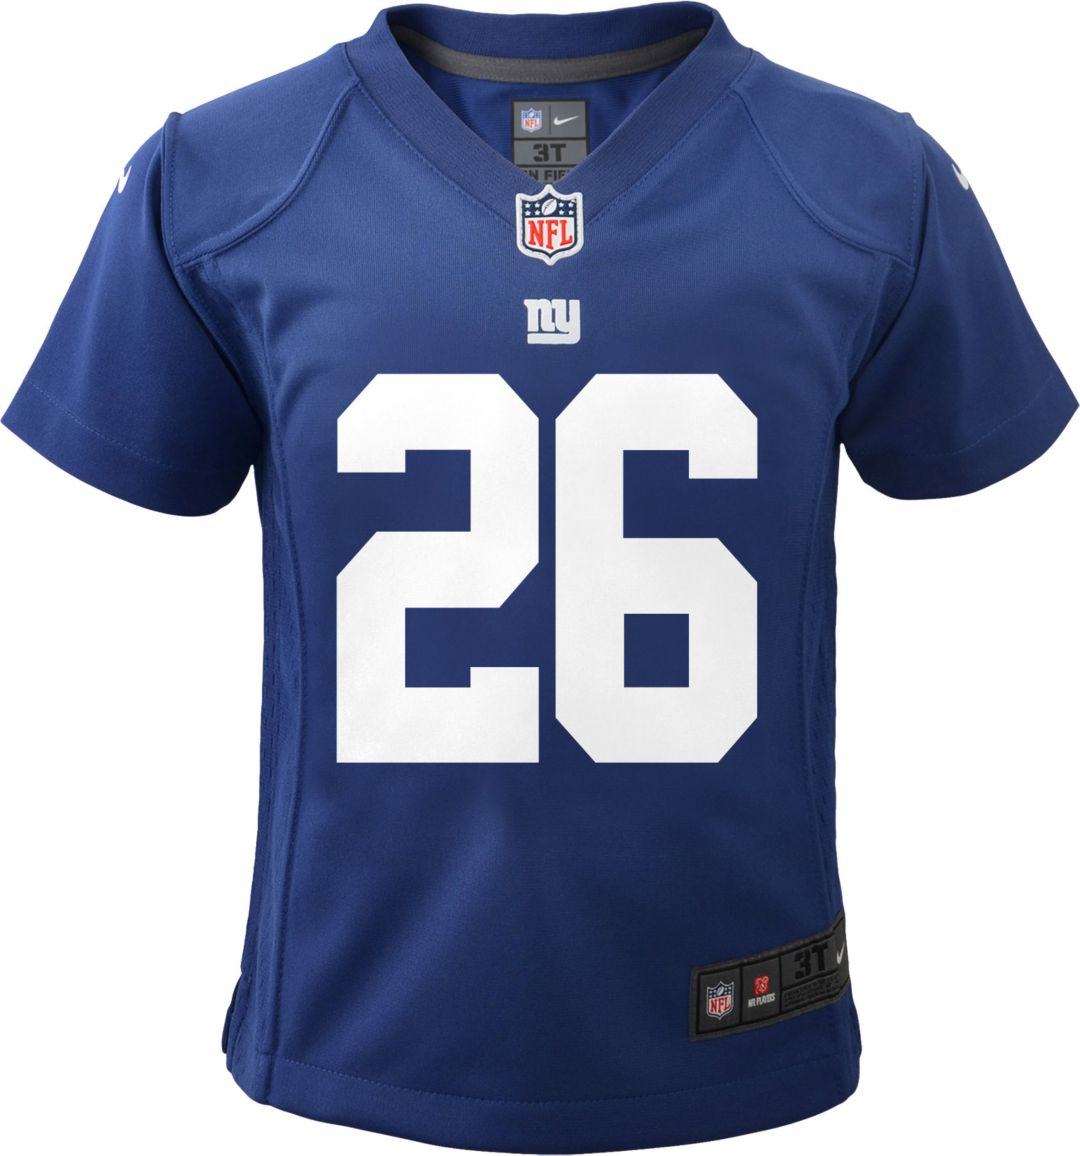 online store 9251a 46816 ny giants game jersey